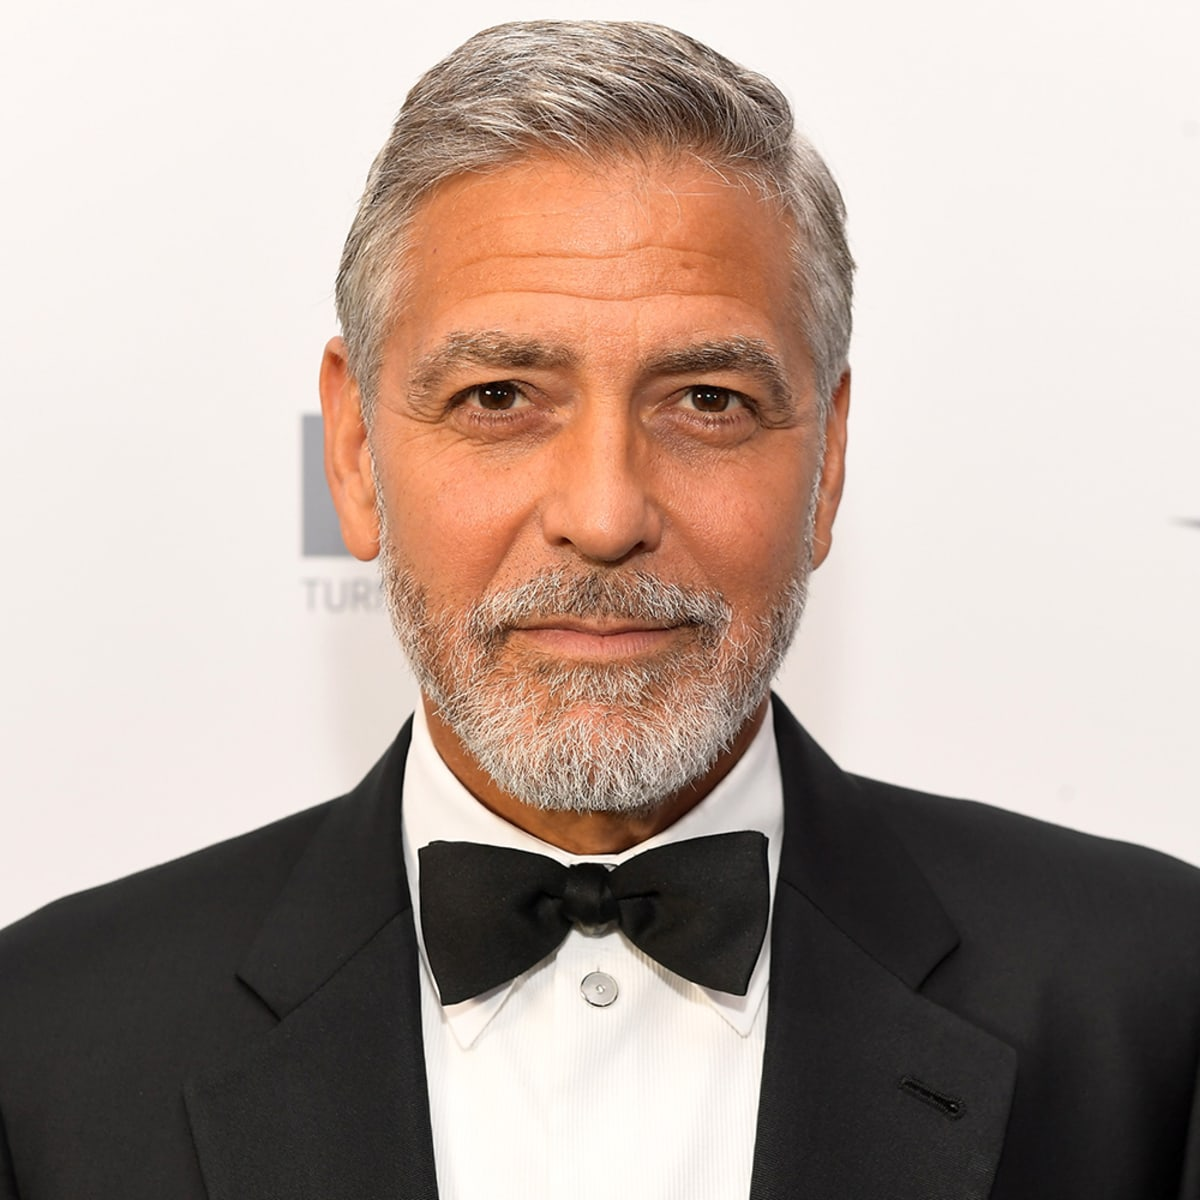 George Clooney Phone number, Email Id, Fanmail, Instagram, Tiktok, and Contact Details